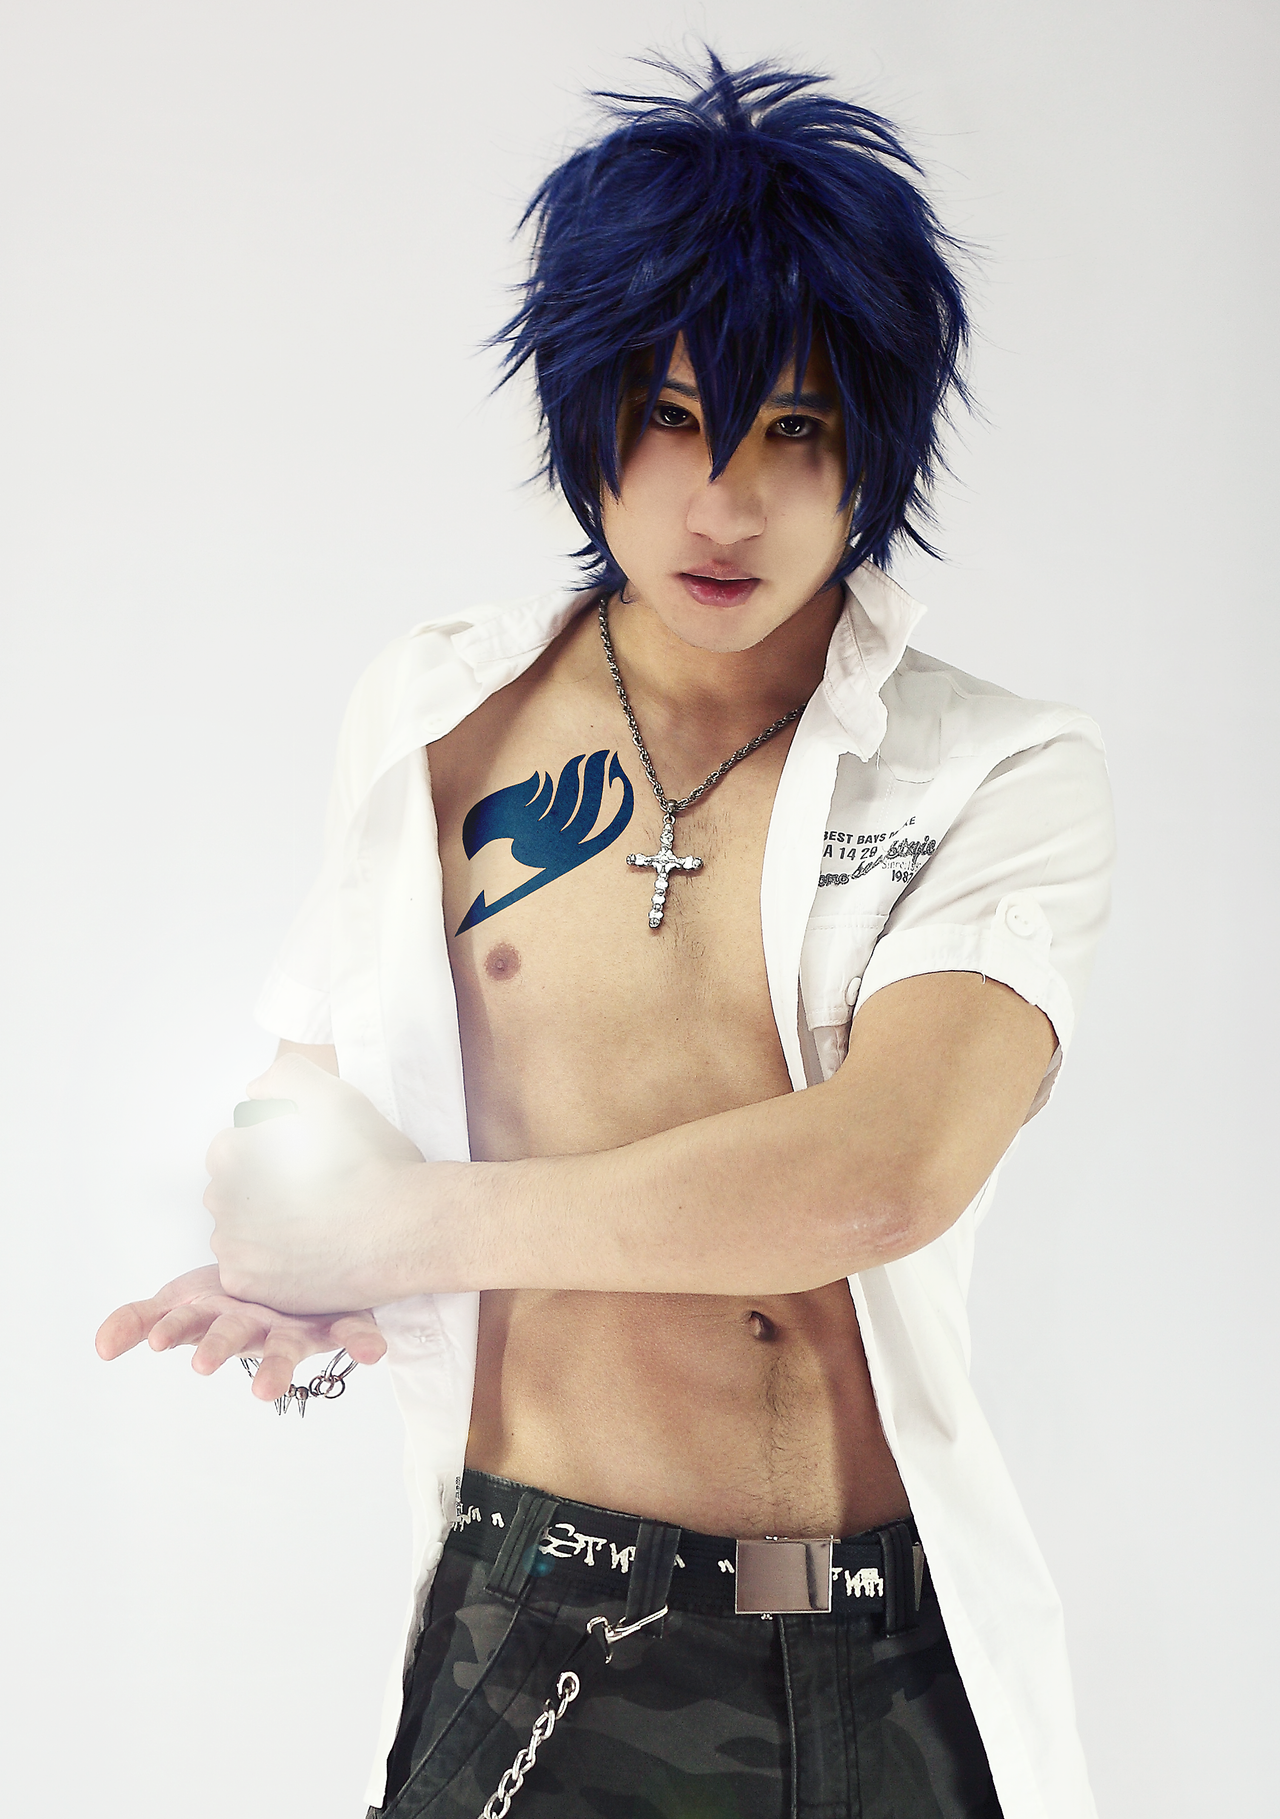 cosplay Gray fullbuster by sochouquette on DeviantArt